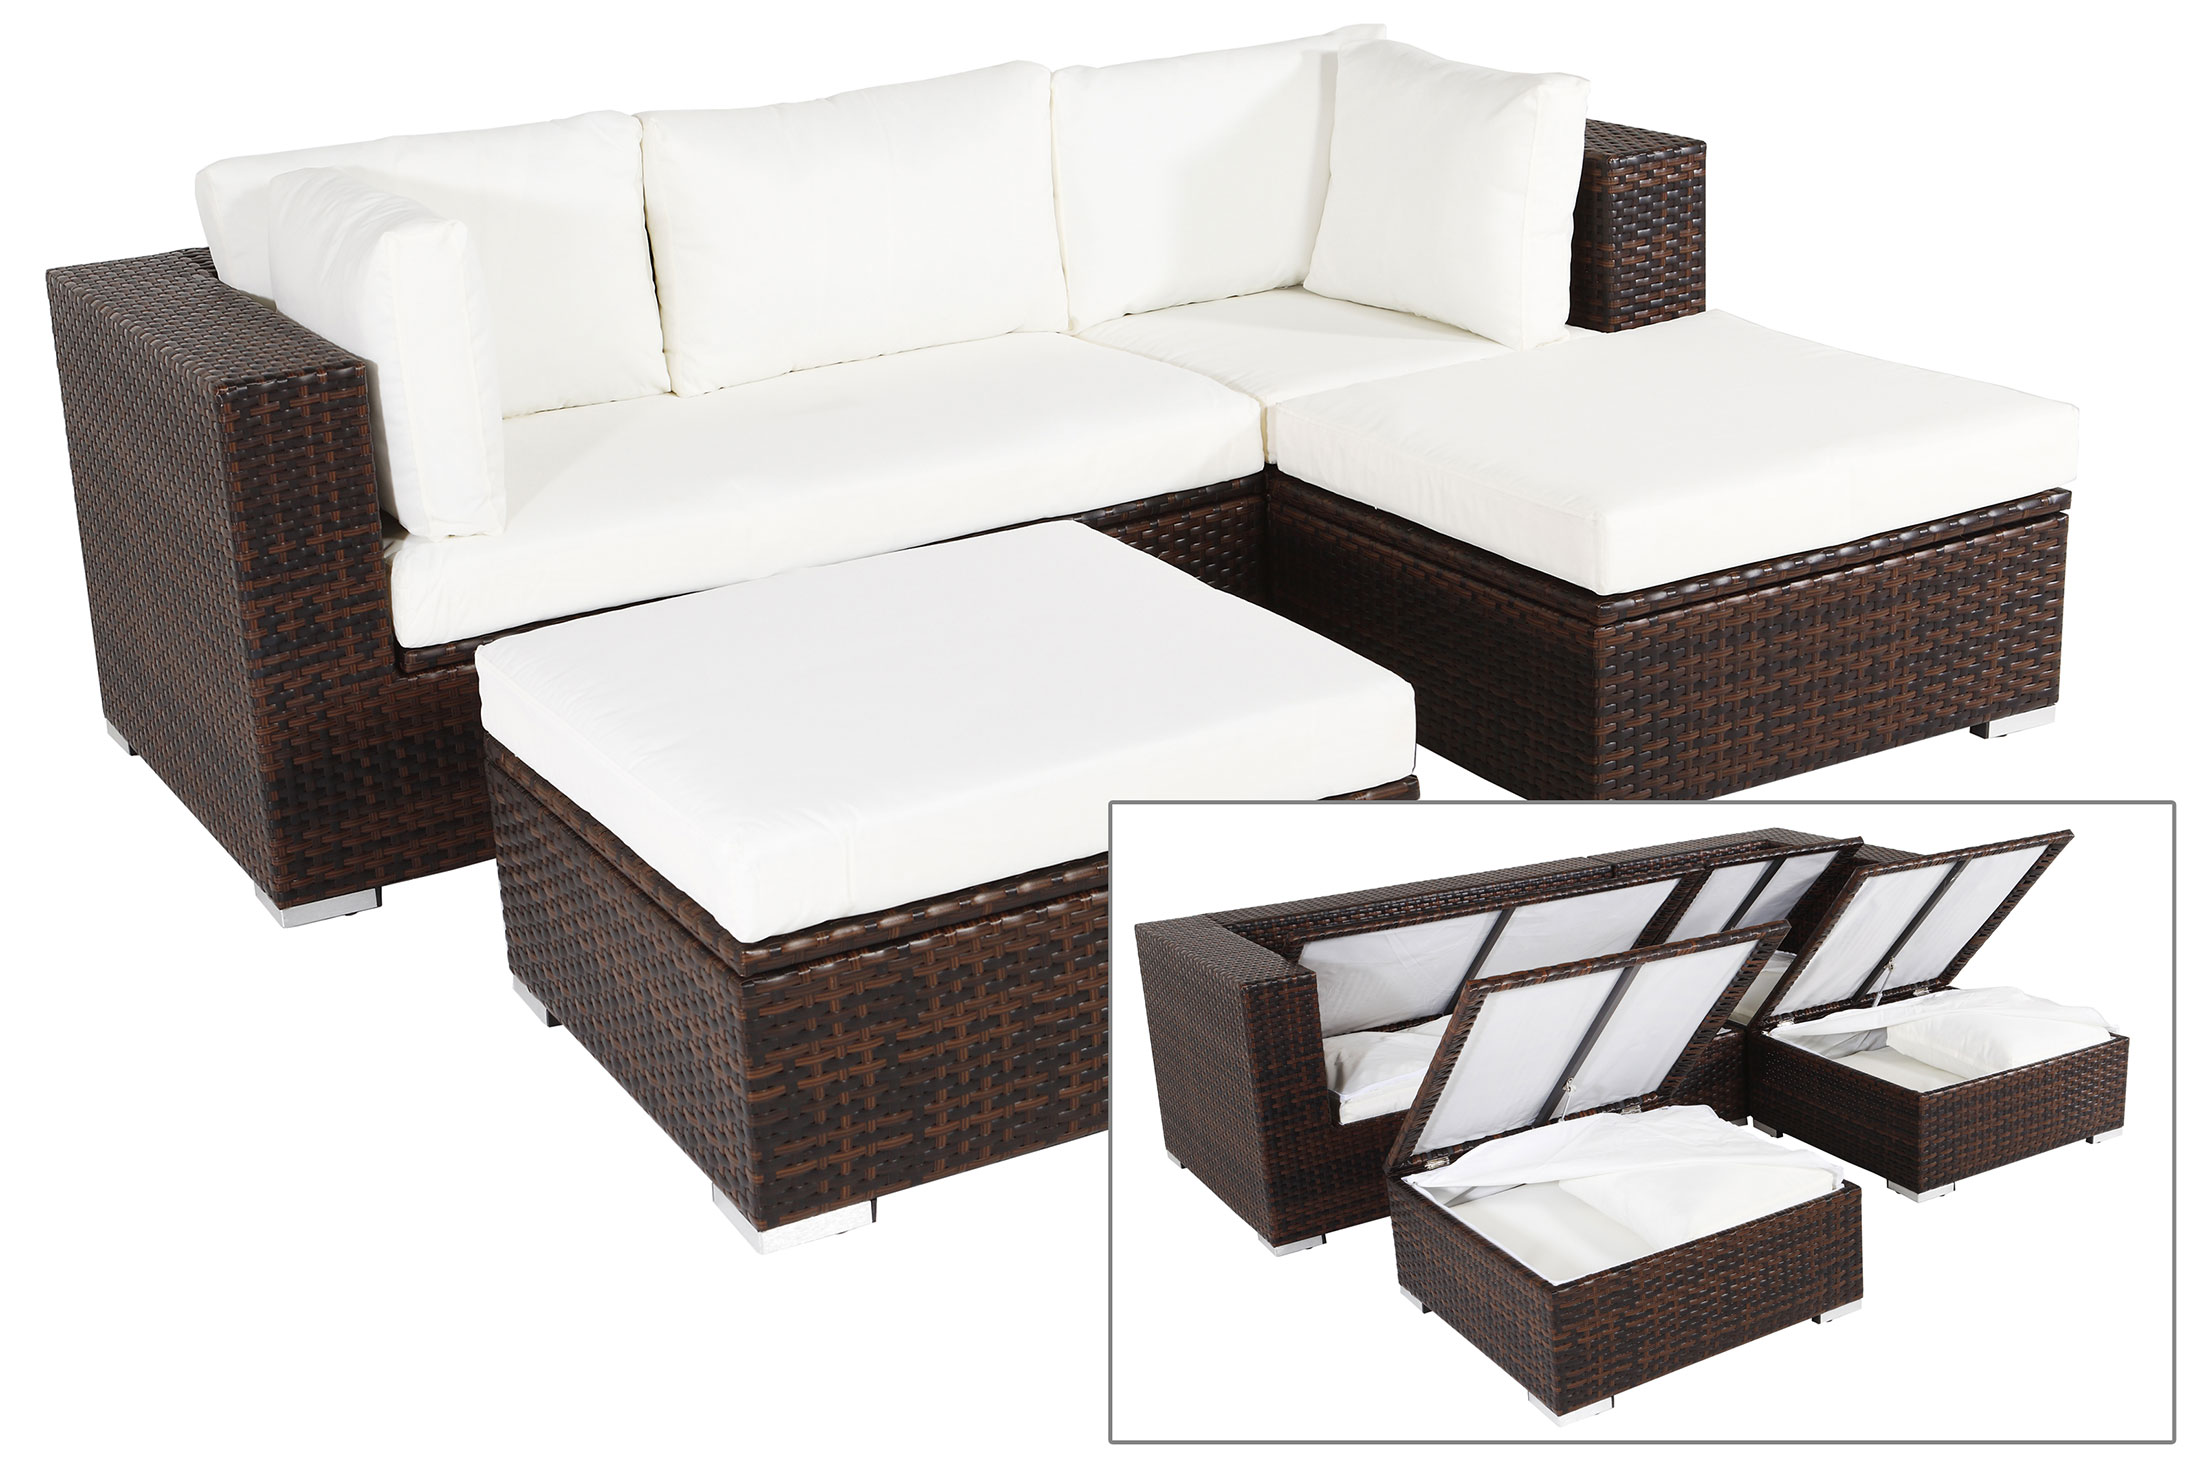 outflexx gartenm belset aus polyrattan mit boxfunktion inkl 2 hockern f r 5 pers braun. Black Bedroom Furniture Sets. Home Design Ideas